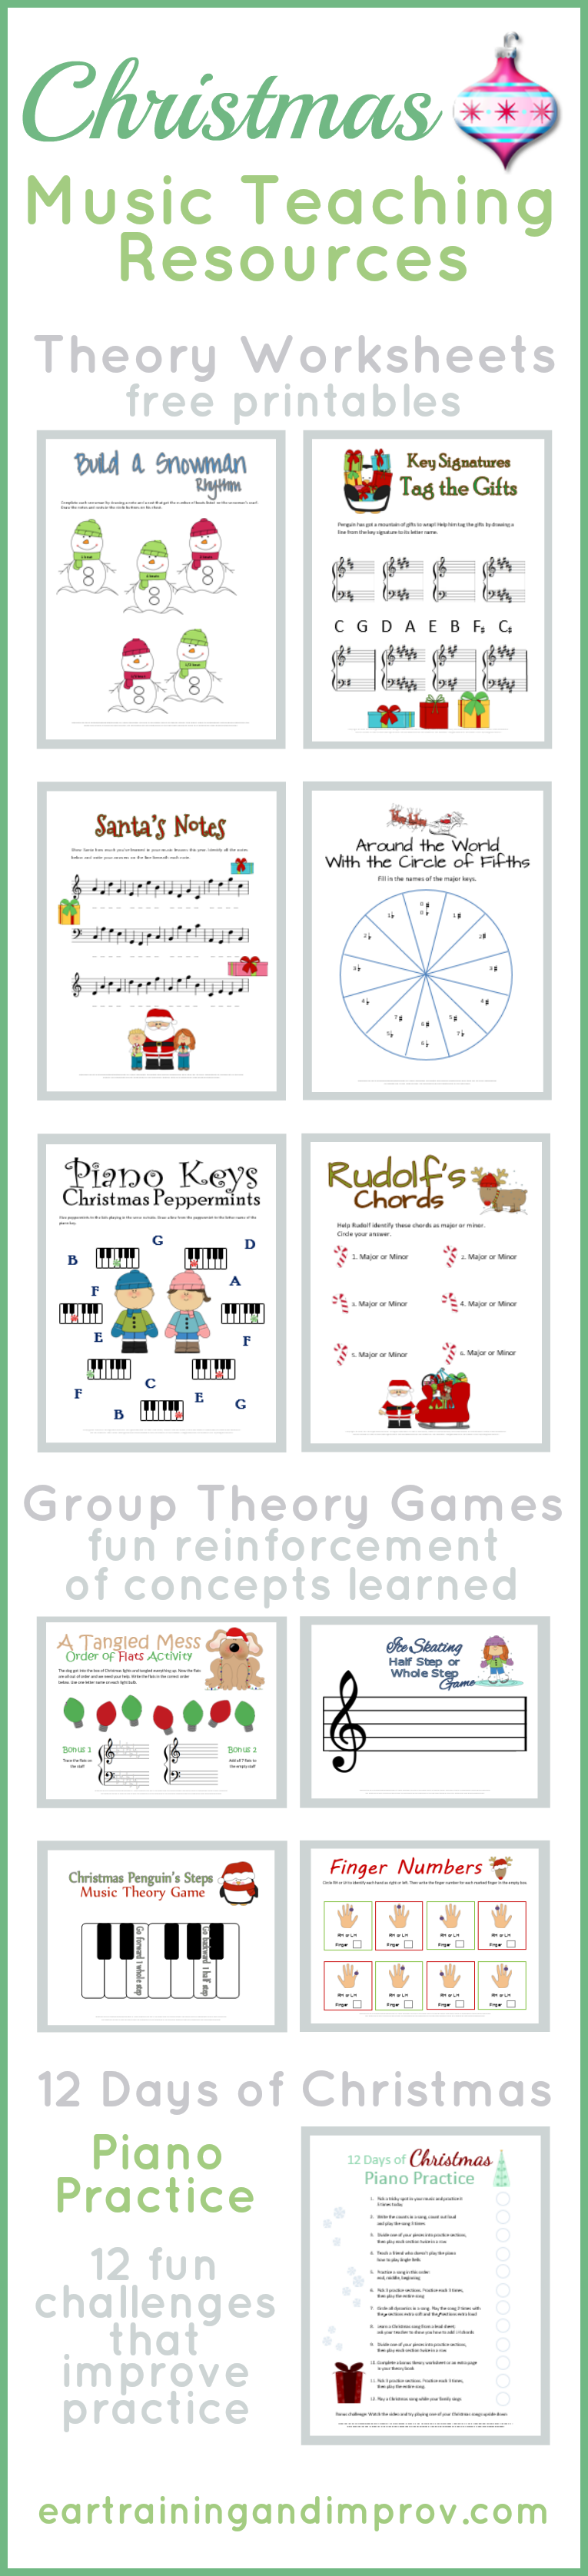 Worksheets Piano Theory Worksheets christmas music theory worksheets 20 free printables teaching resources group games 12